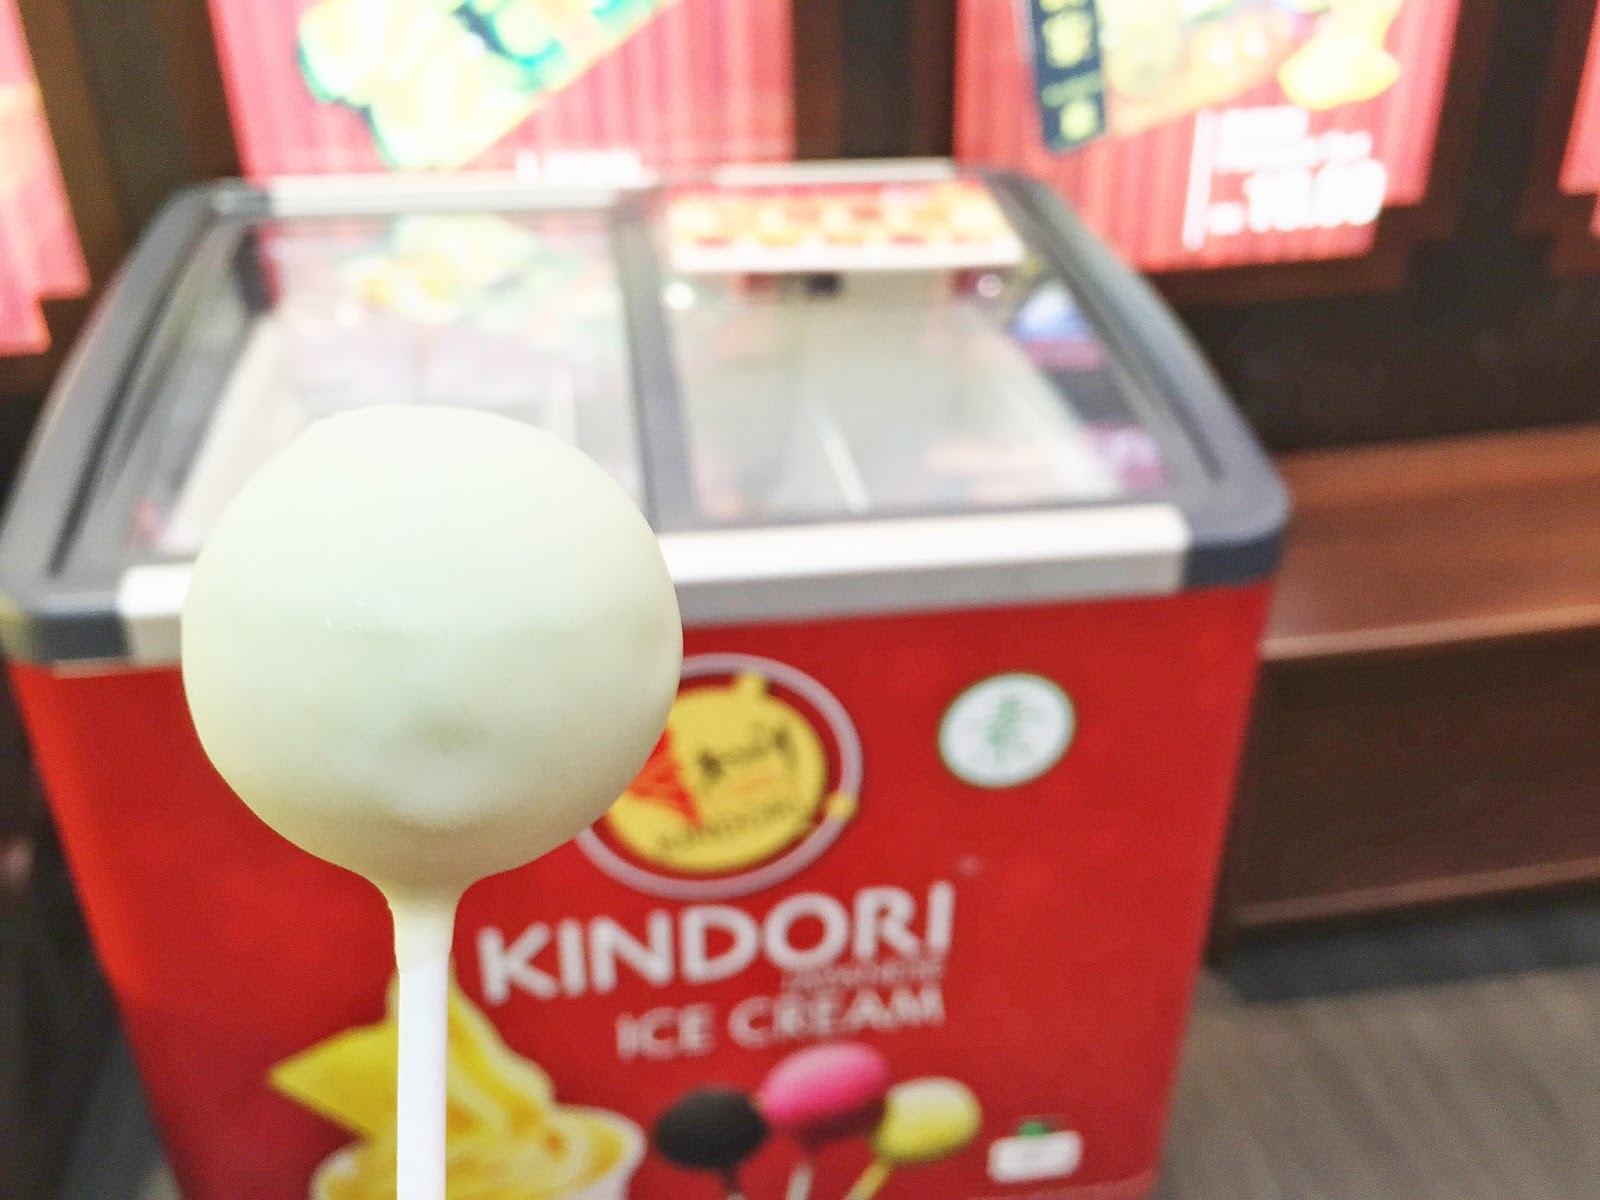 Penang - Kindori Ice Cream